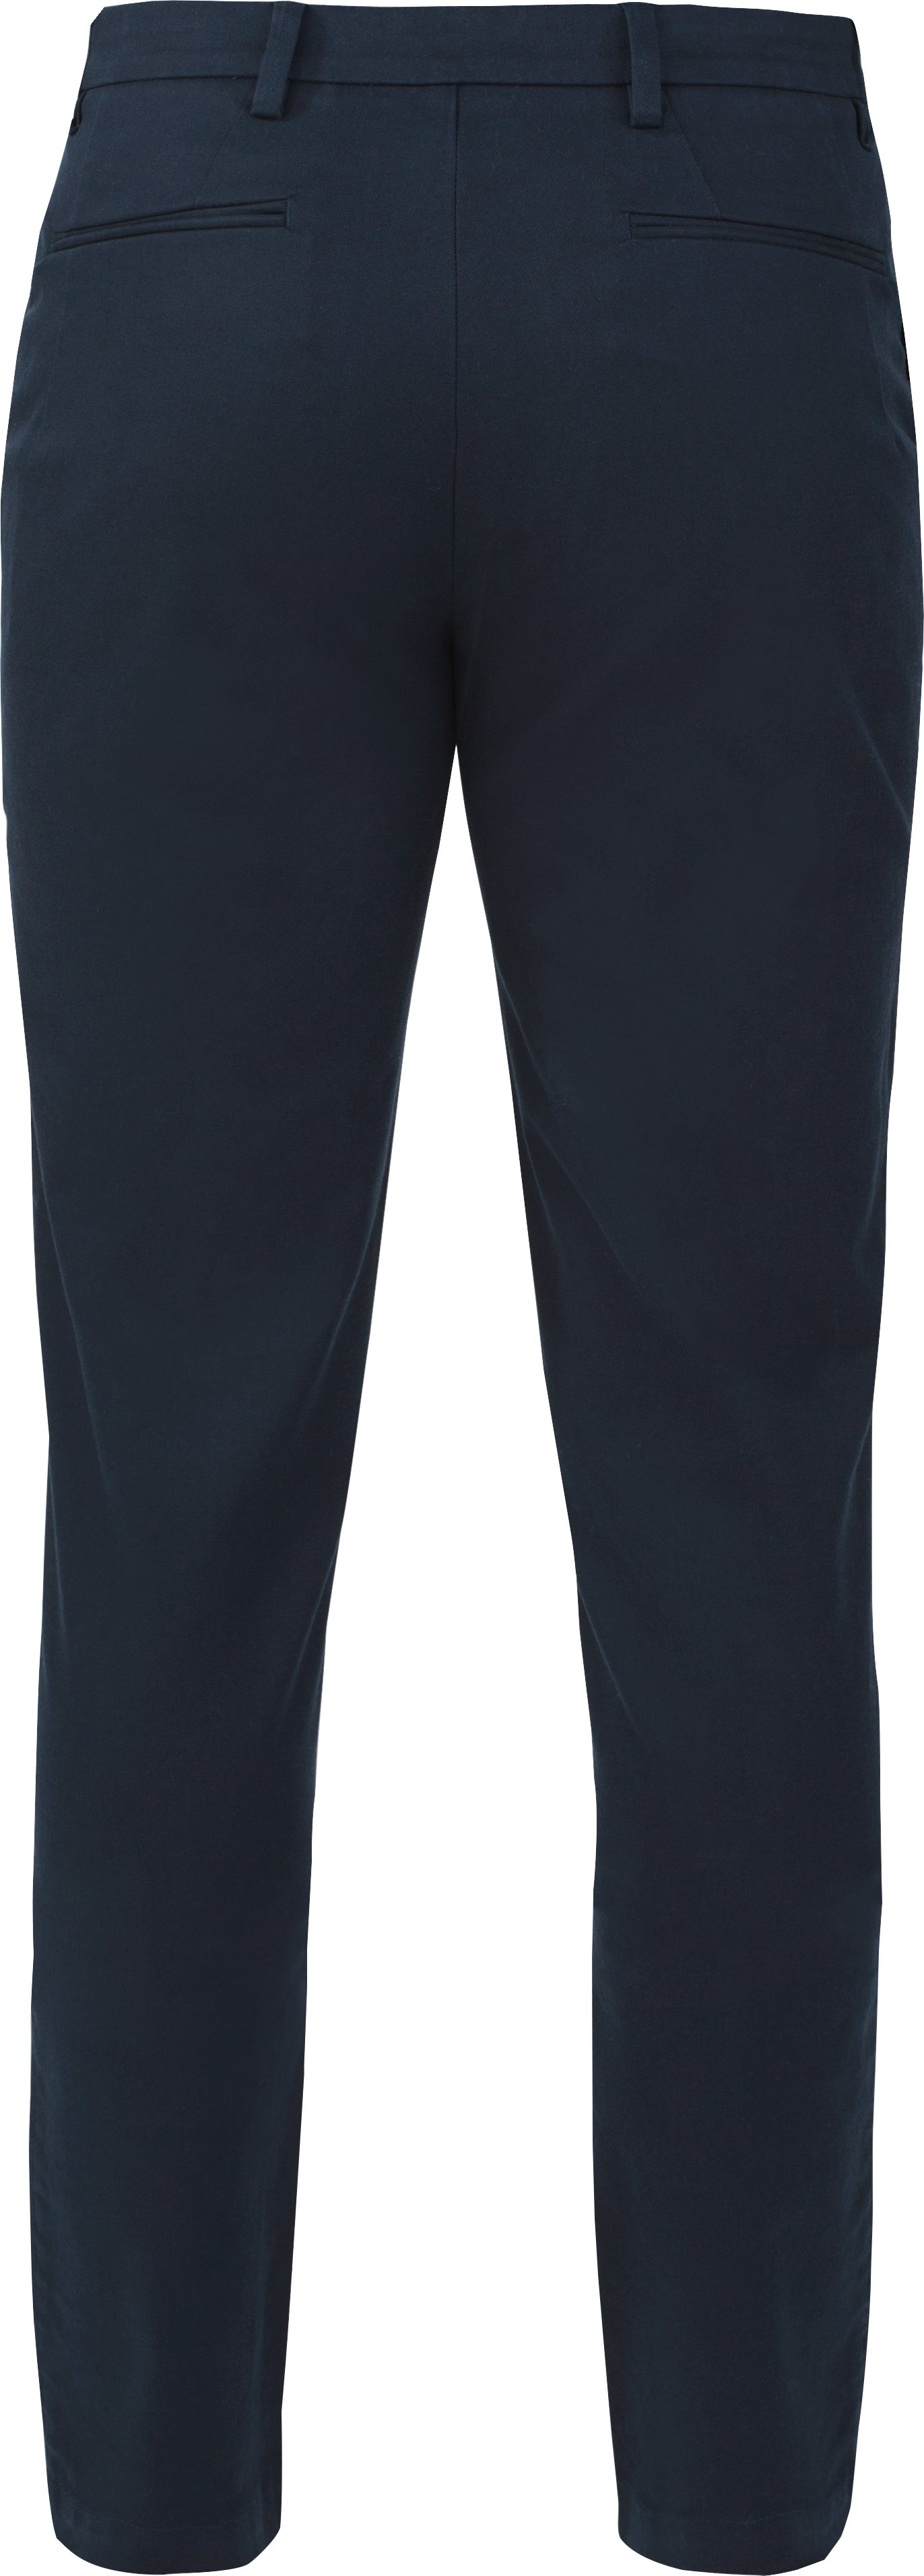 Men's Fieldhouse Rowing Chinos, Navy,